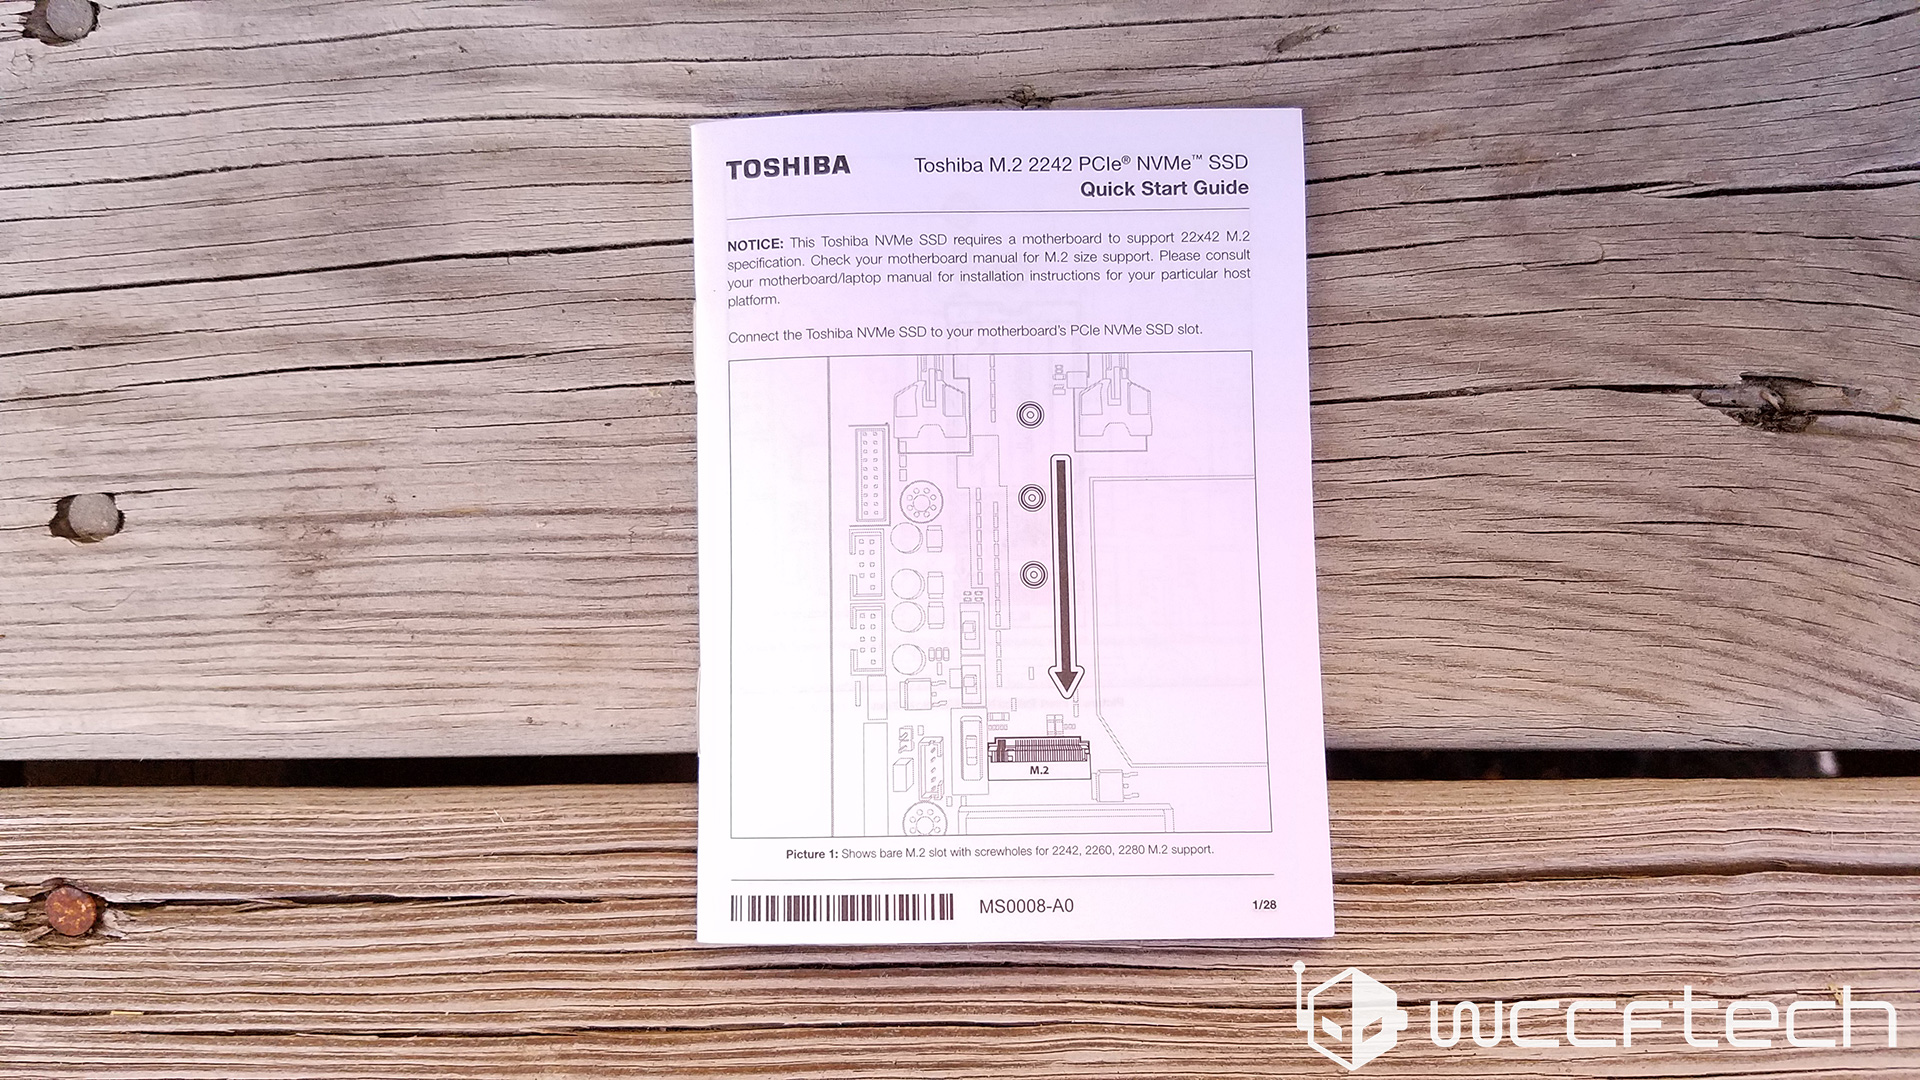 wccftech-toshiba-rc100-240gb-instructions